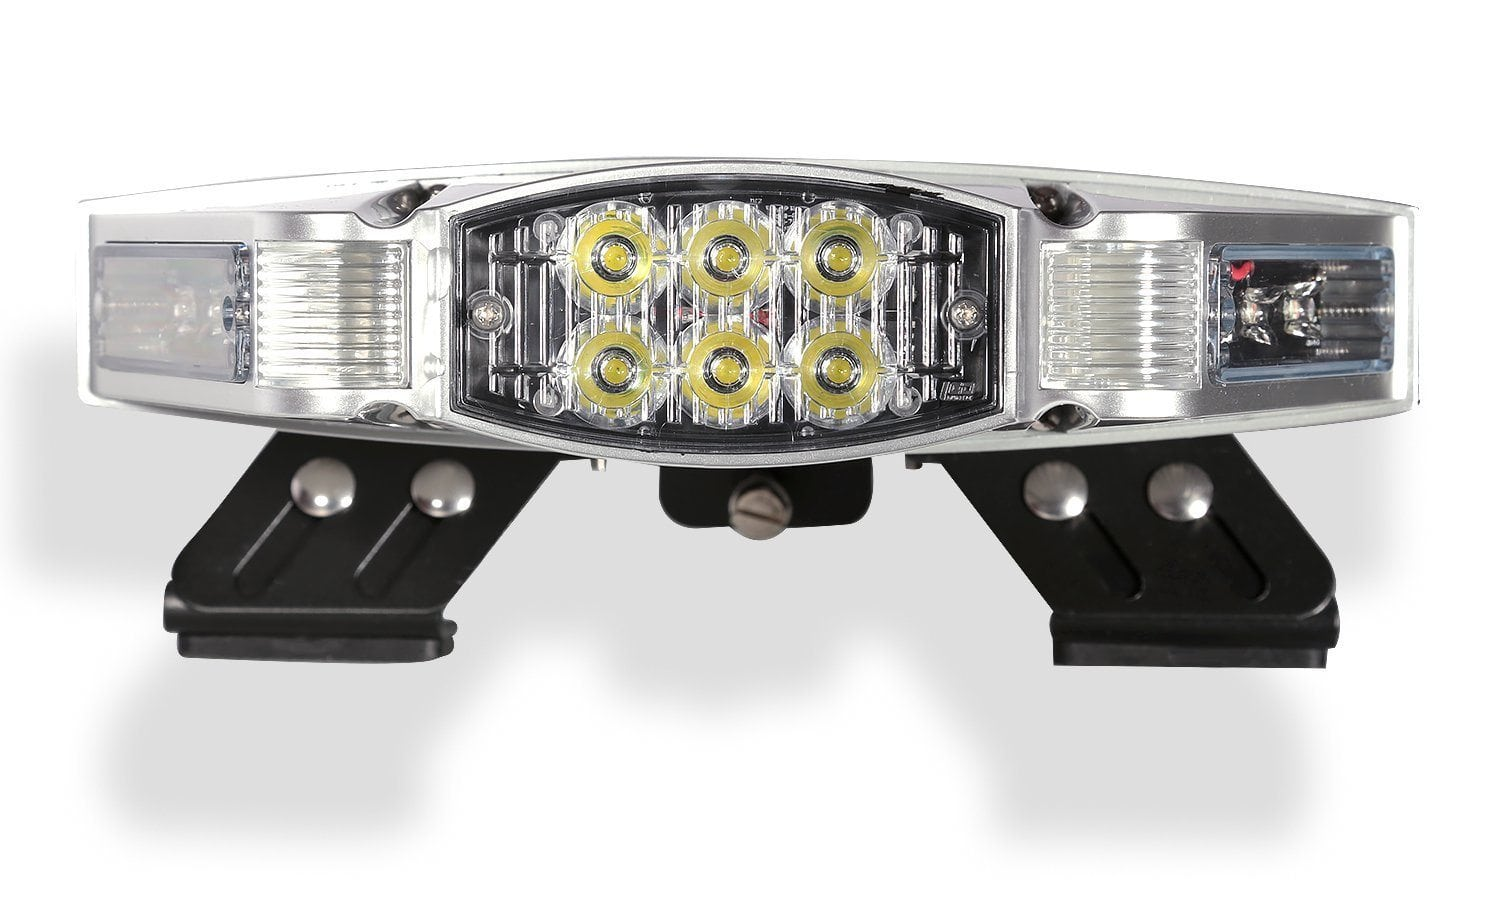 Falcon flight tir emergency 3 watt led light bar 48 in led equipped aloadofball Image collections